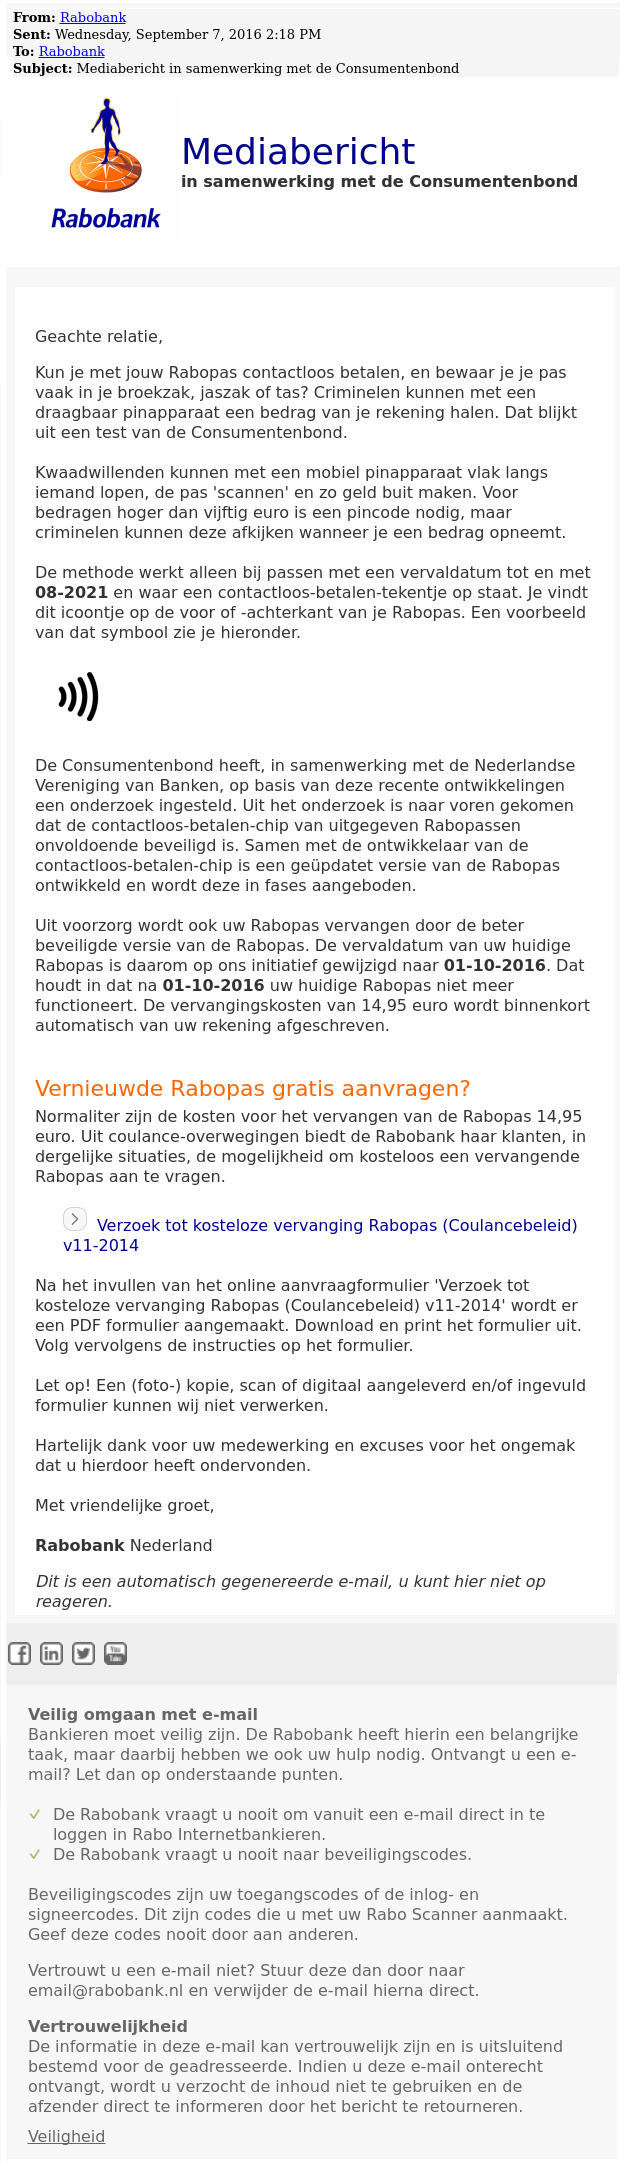 Mail 'Rabobank' is phishing